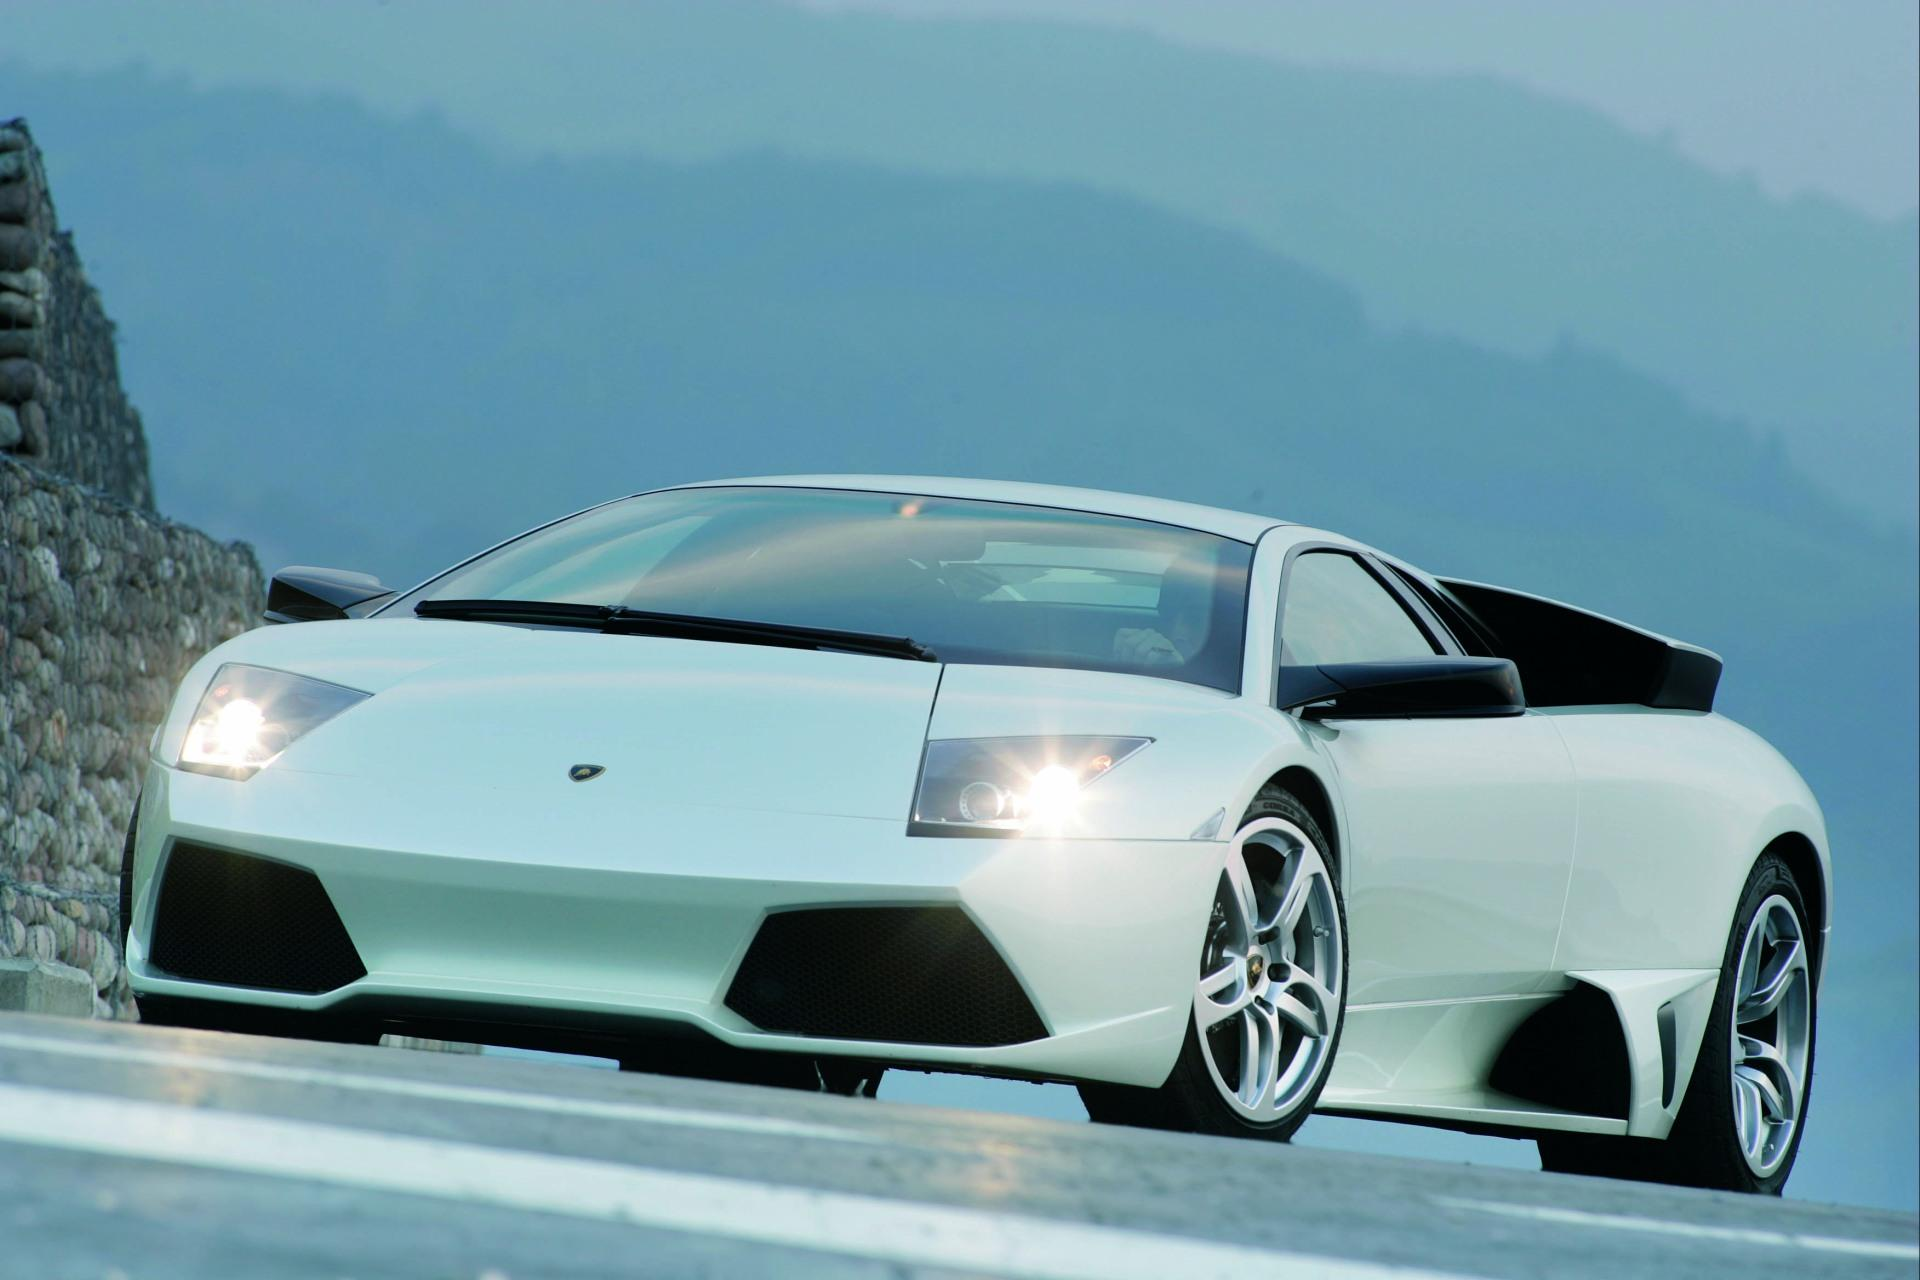 2011 Lamborghini Murcielago Lp640 News And Information